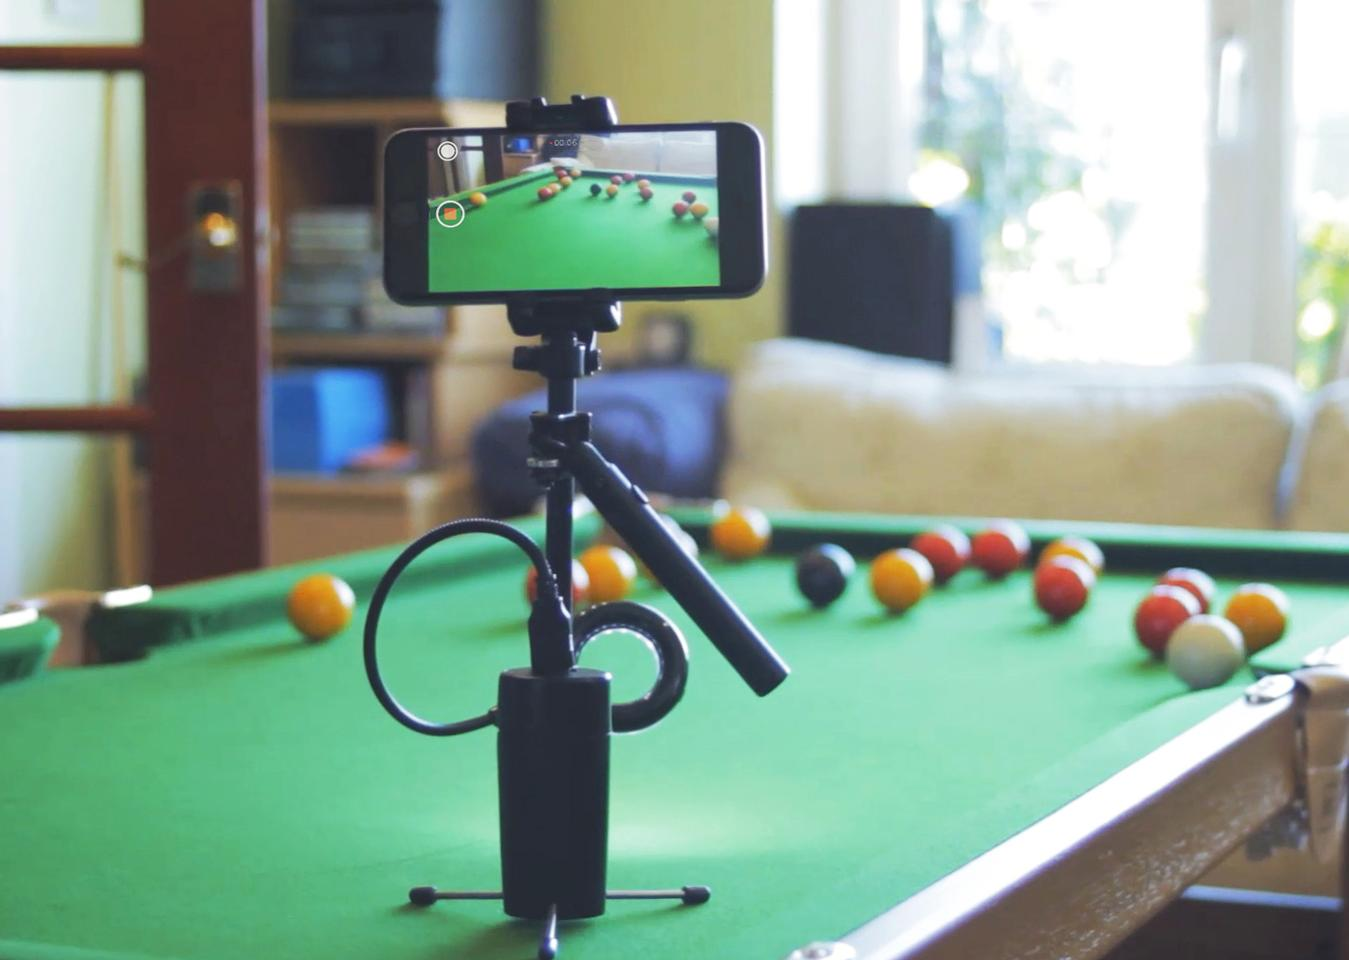 The base of the MiniRig stabilizer features tripod legs